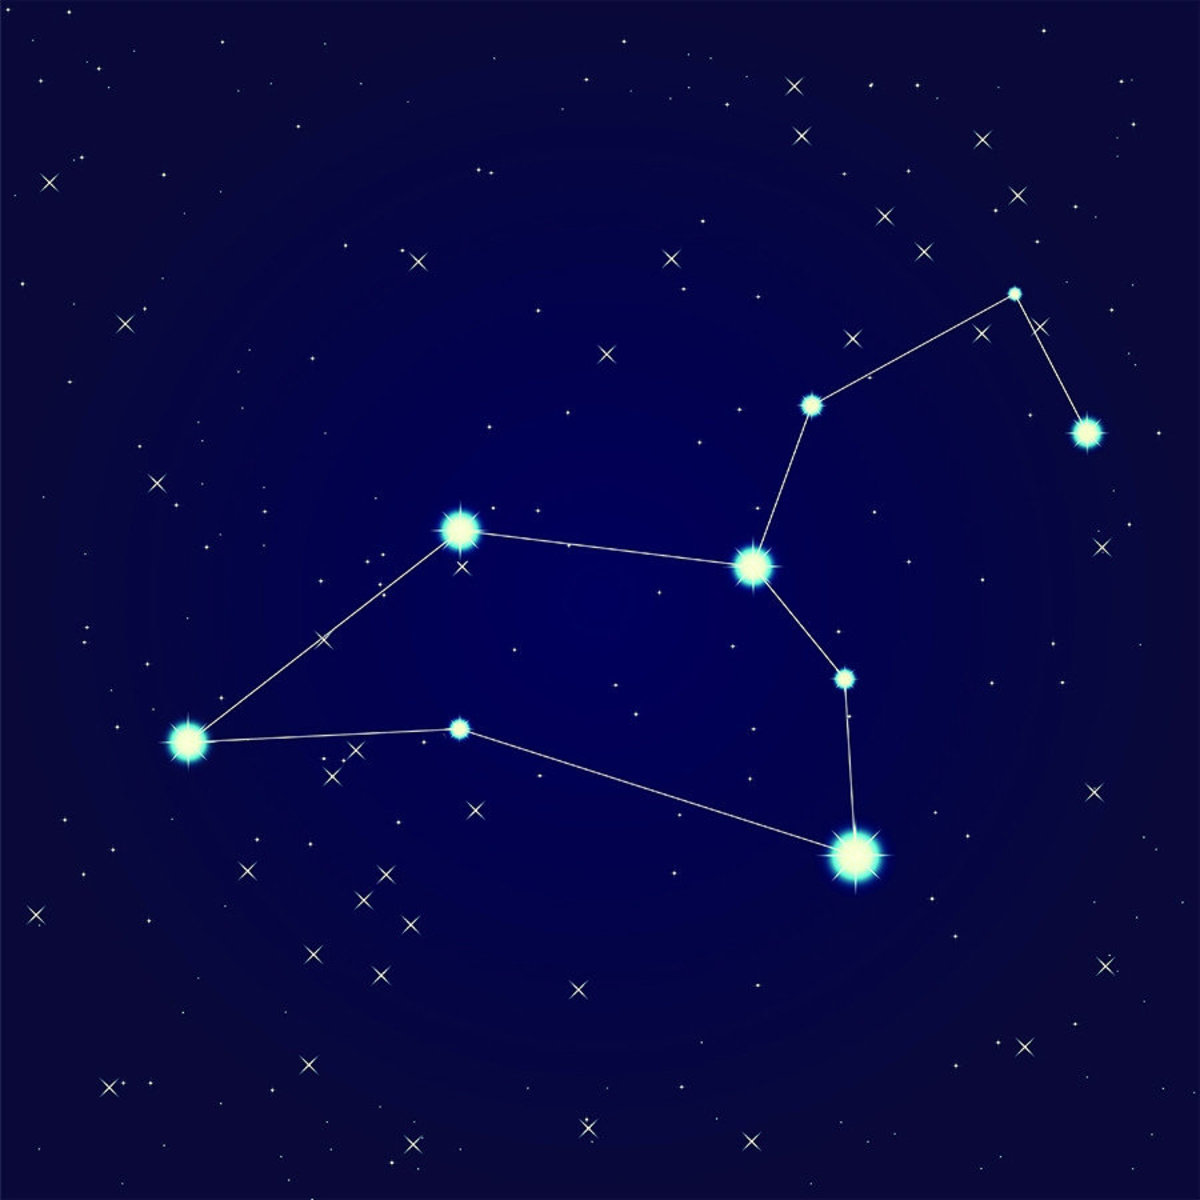 Cancer Constellation Wall Mural